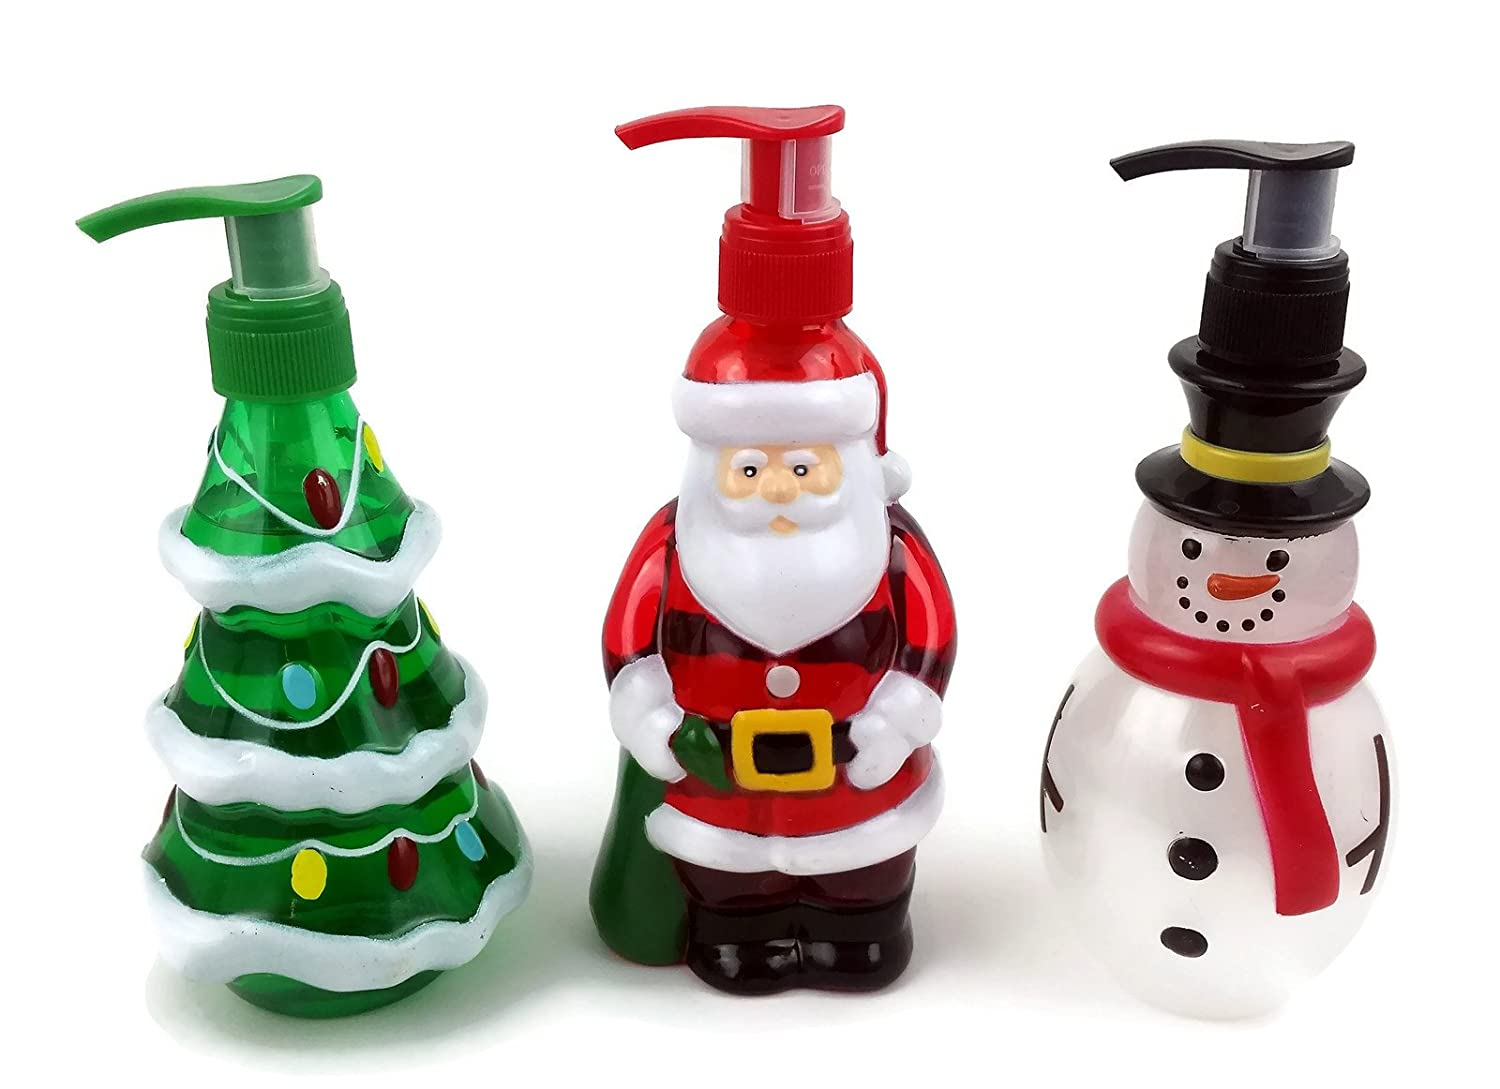 Holiday Hand Soaps Trio. Christmas themed dispensers shaped like Santa Claus, Frosty the Snowman and a Christmas Tree